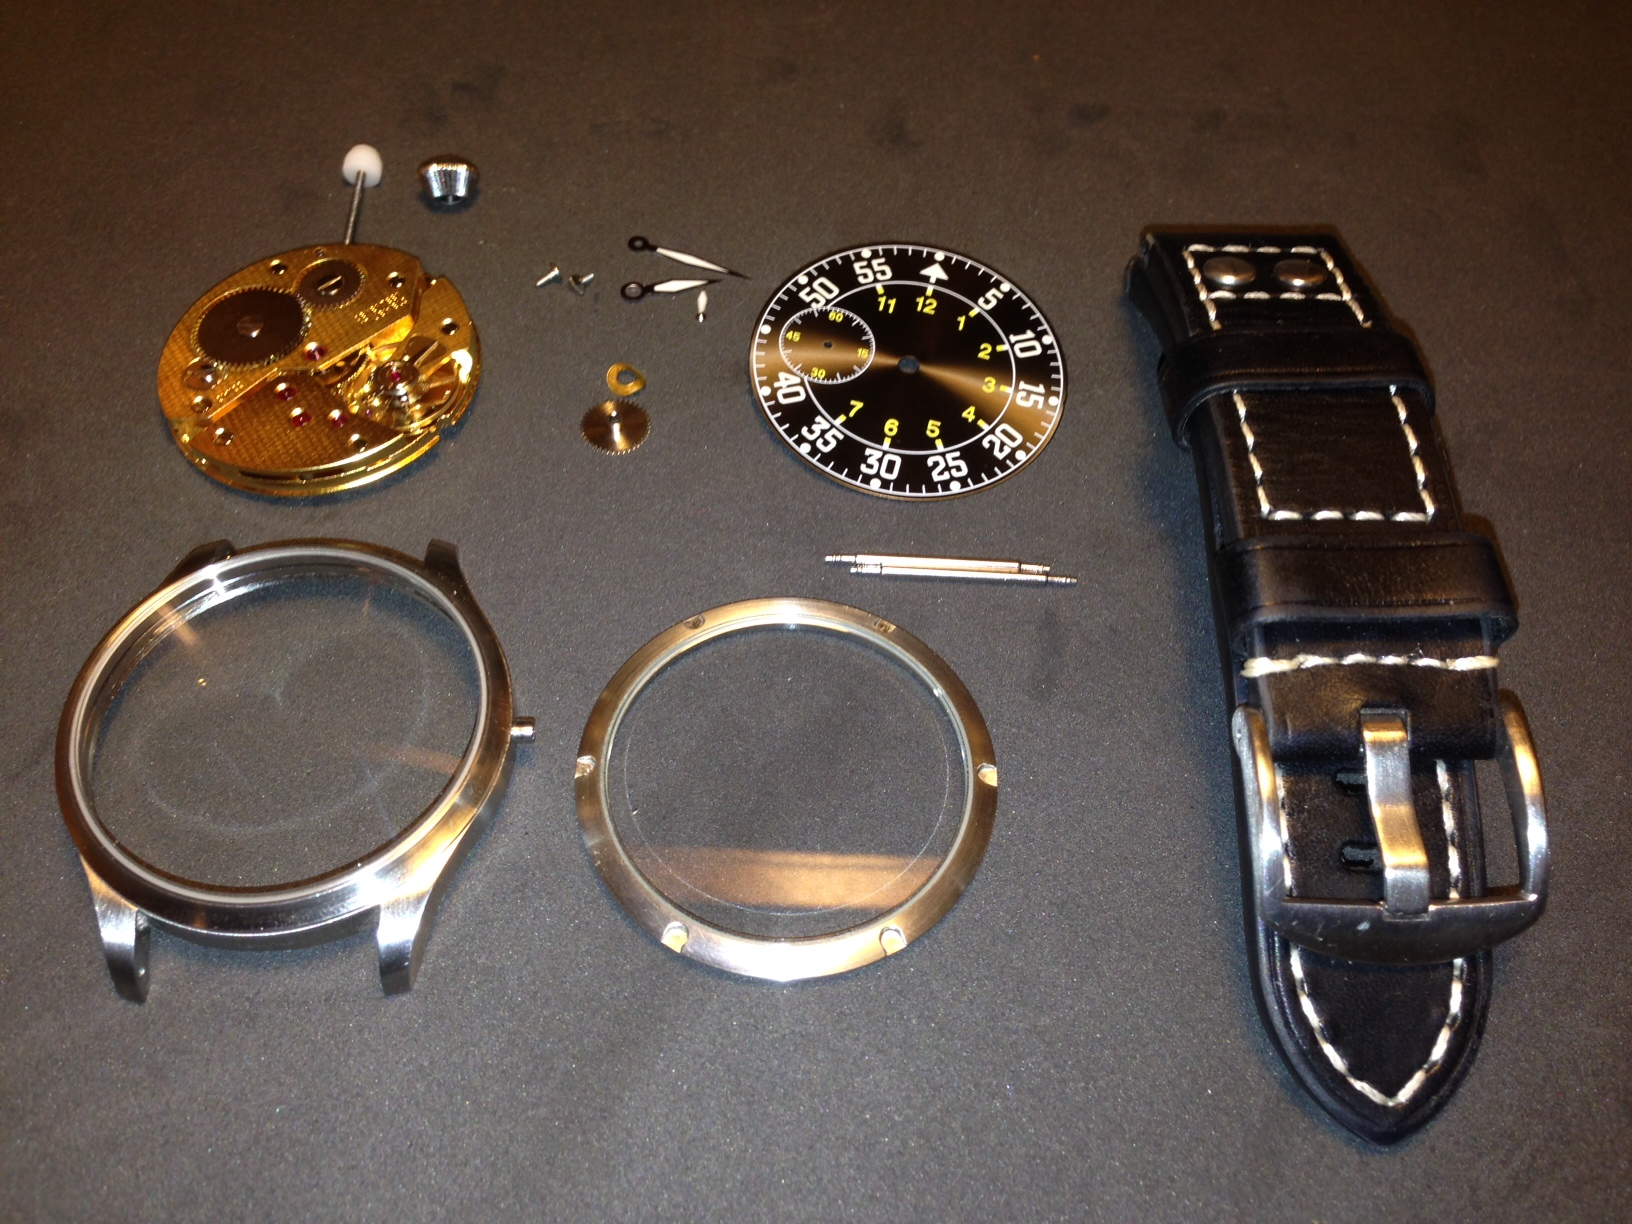 How to build your own mechanical watch - Flieger-01